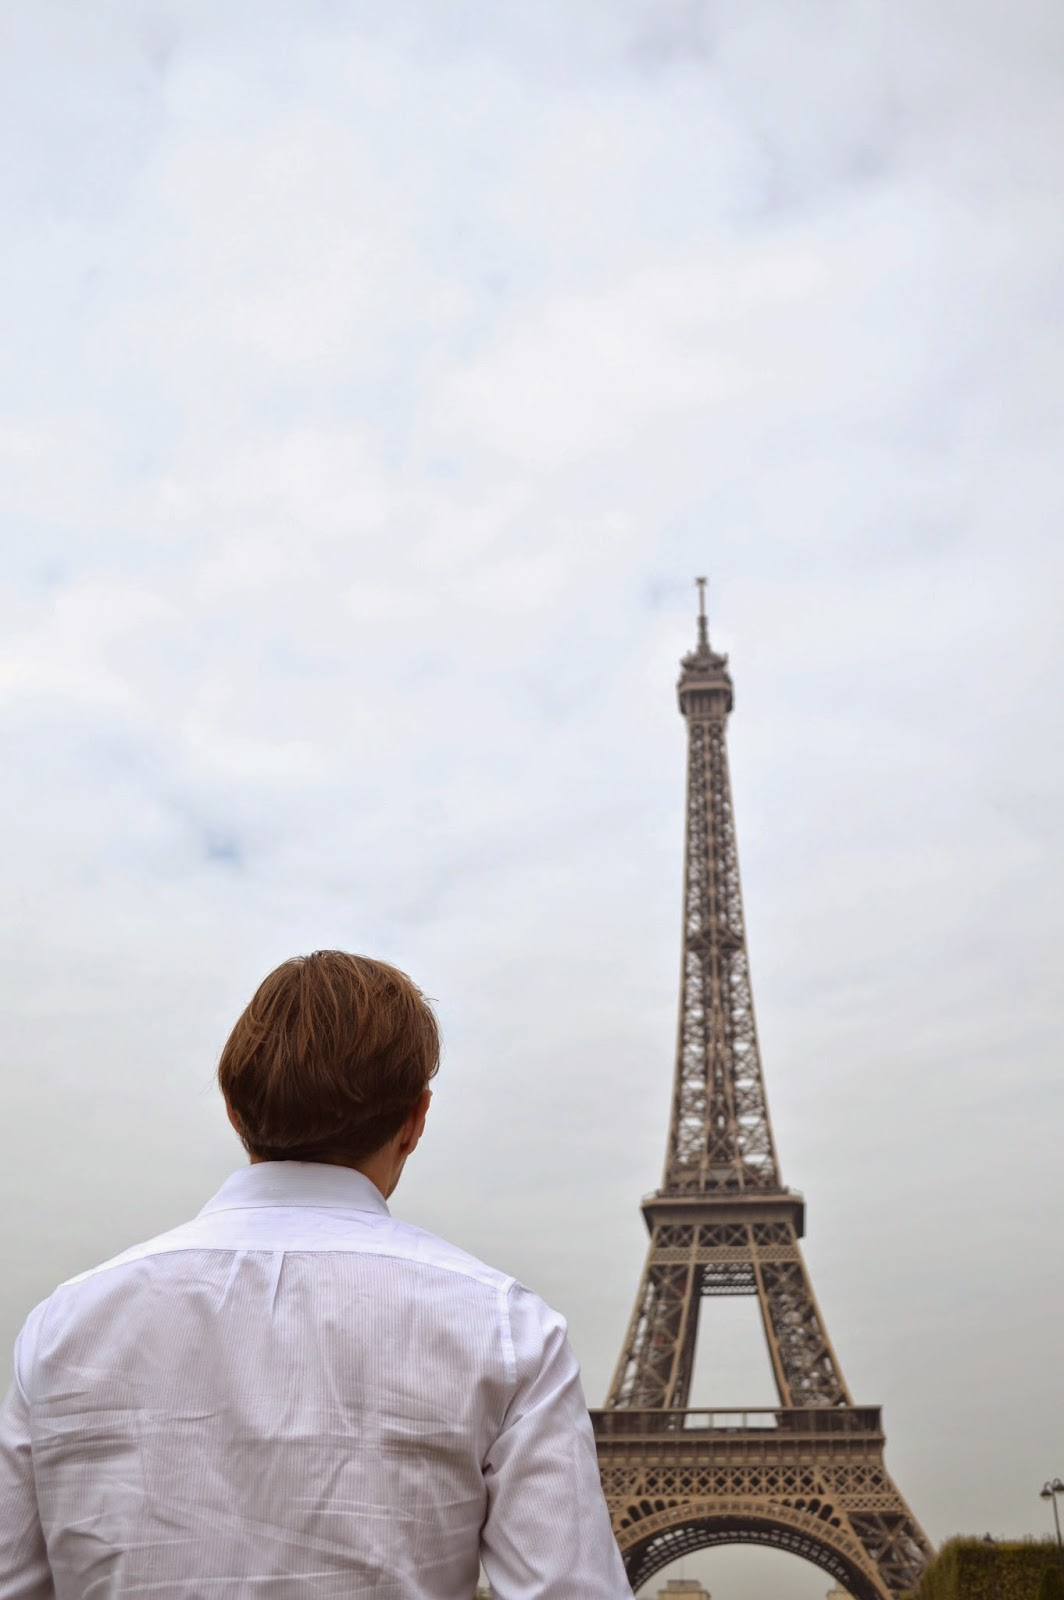 David in front of the Eiffel tower